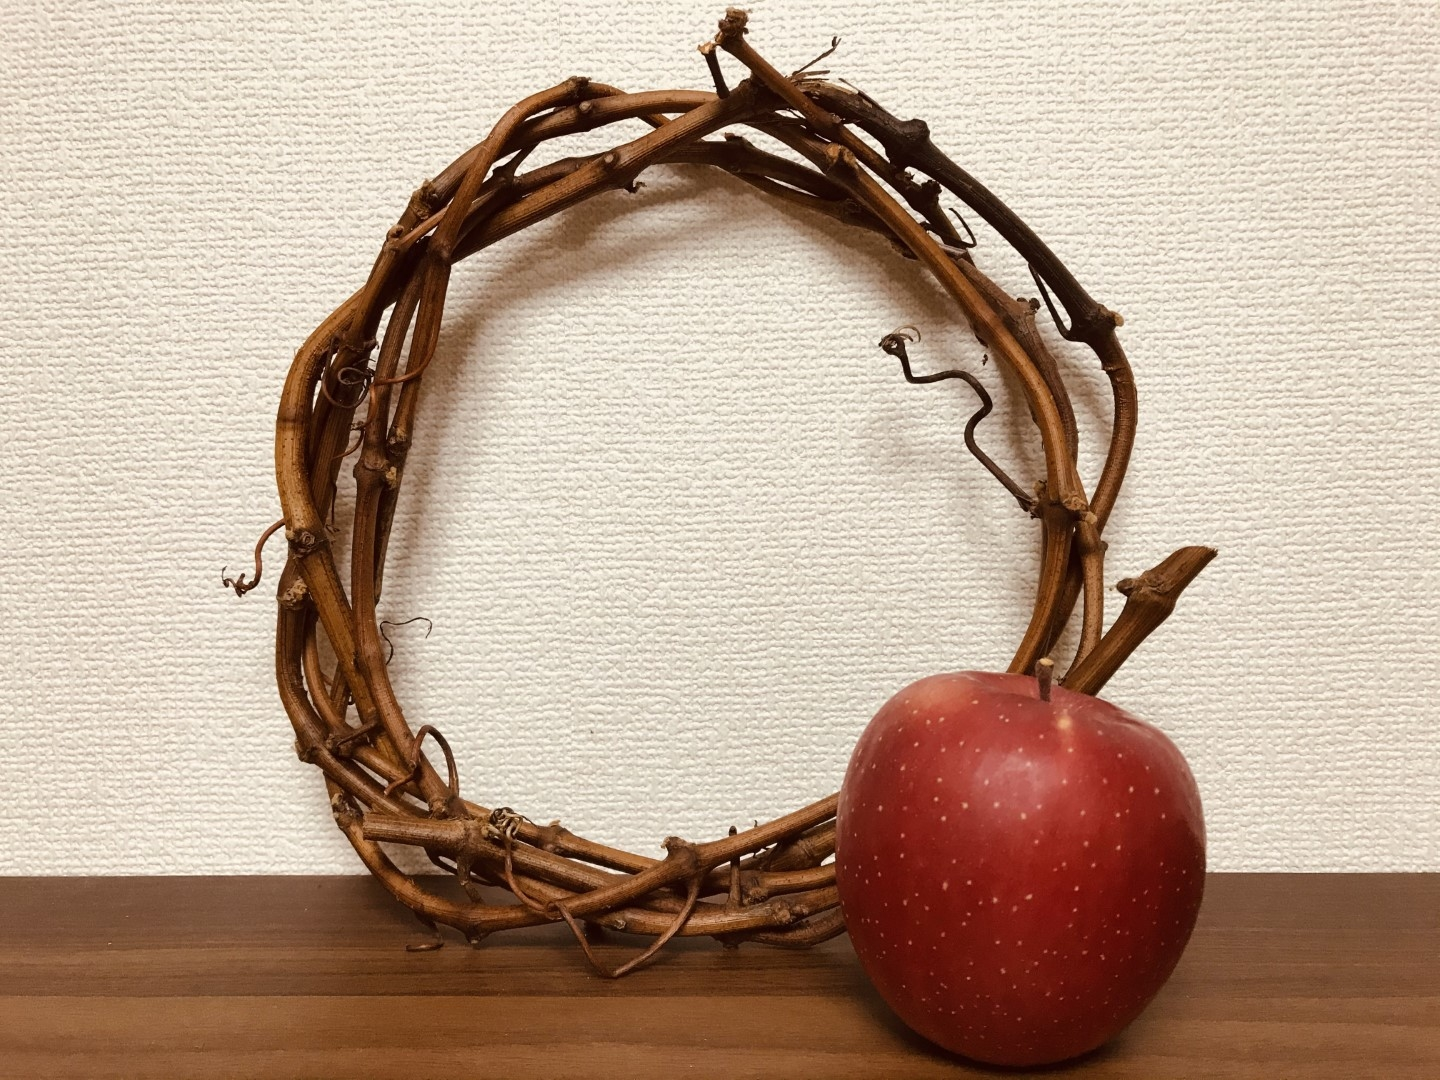 20201225_ks_wreath.jpg